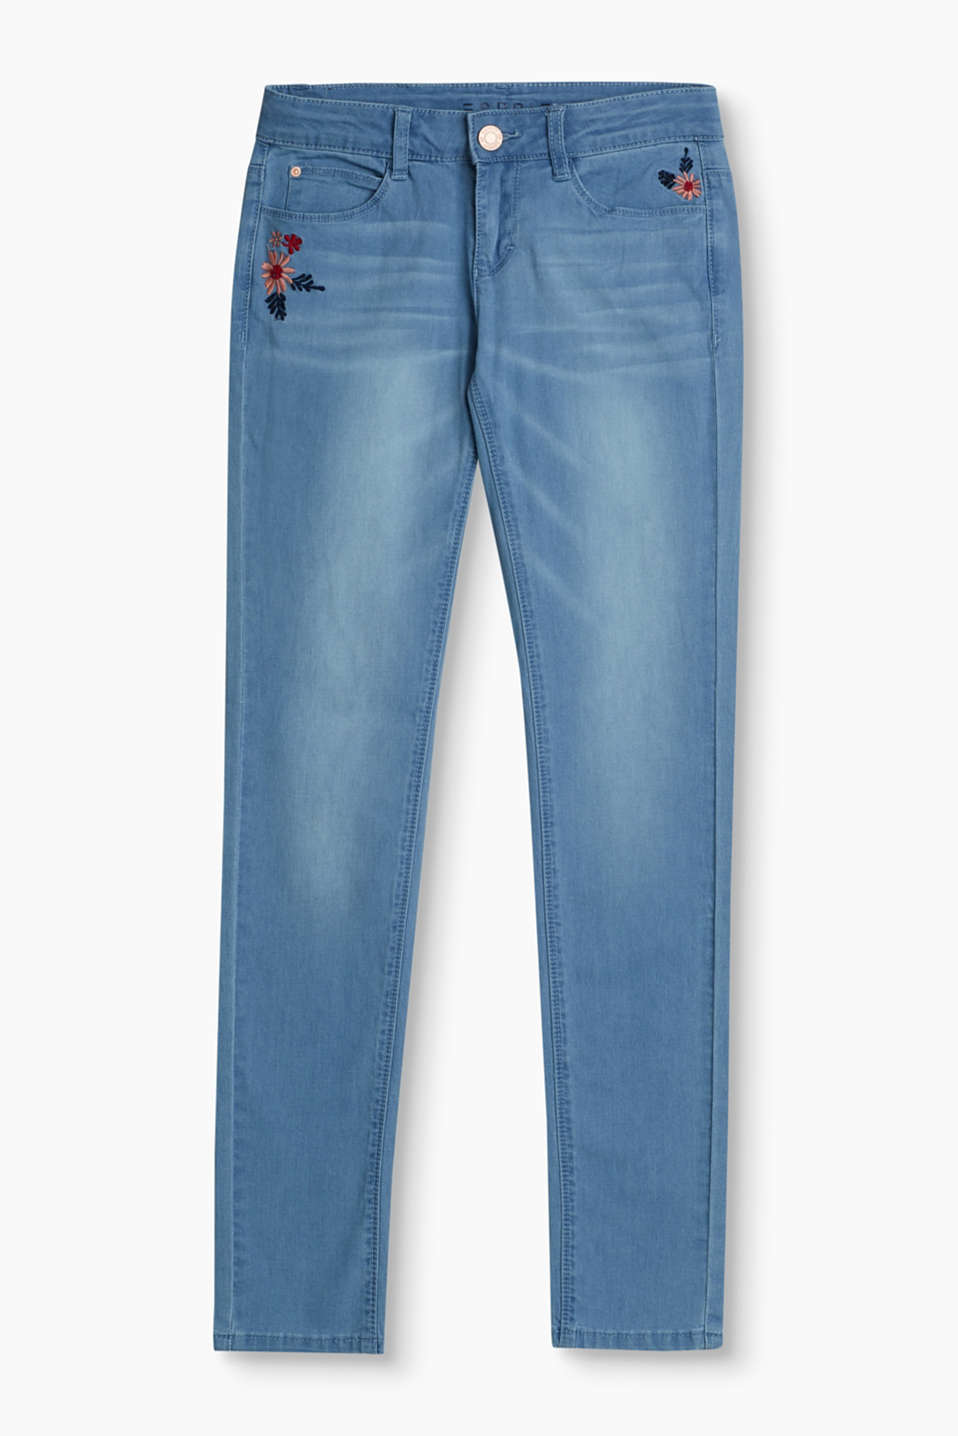 Esprit - Stretch jeans with floral embroidery